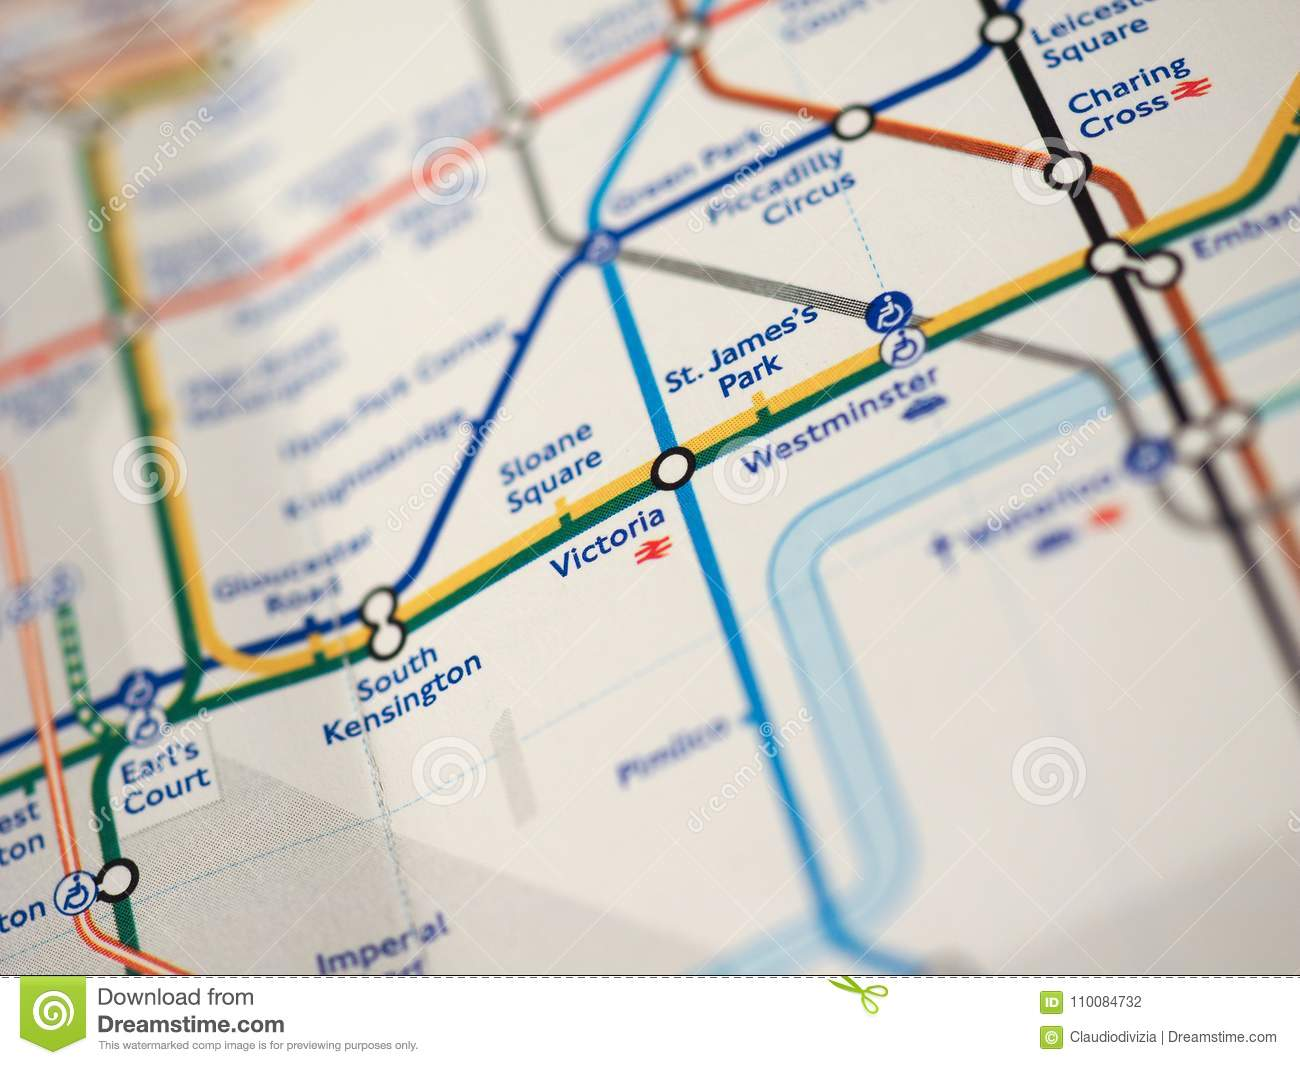 London Stations Map.Map Of London Underground Stock Photo Image Of Mass 110084732